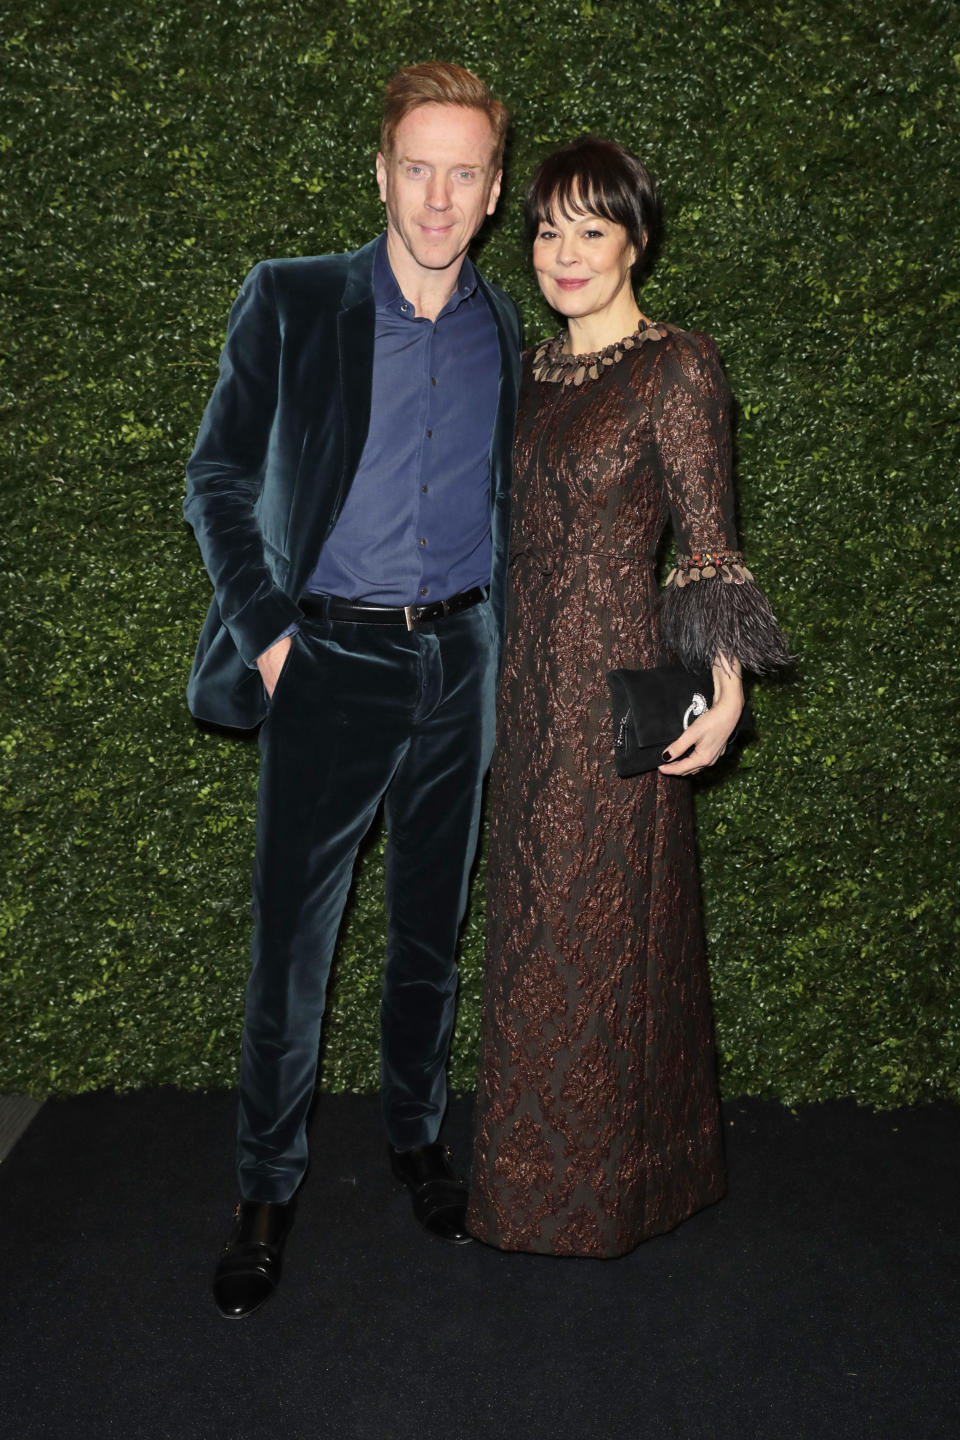 LONDON, ENGLAND - FEBRUARY 01:    Damian Lewis and Helen McCrory arrive at the Charles Finch & CHANEL Pre-BAFTA Party at 5 Hertford Street on February 1, 2020 in London, England.  (Photo by David M. Benett/Dave Benett/Getty Images)